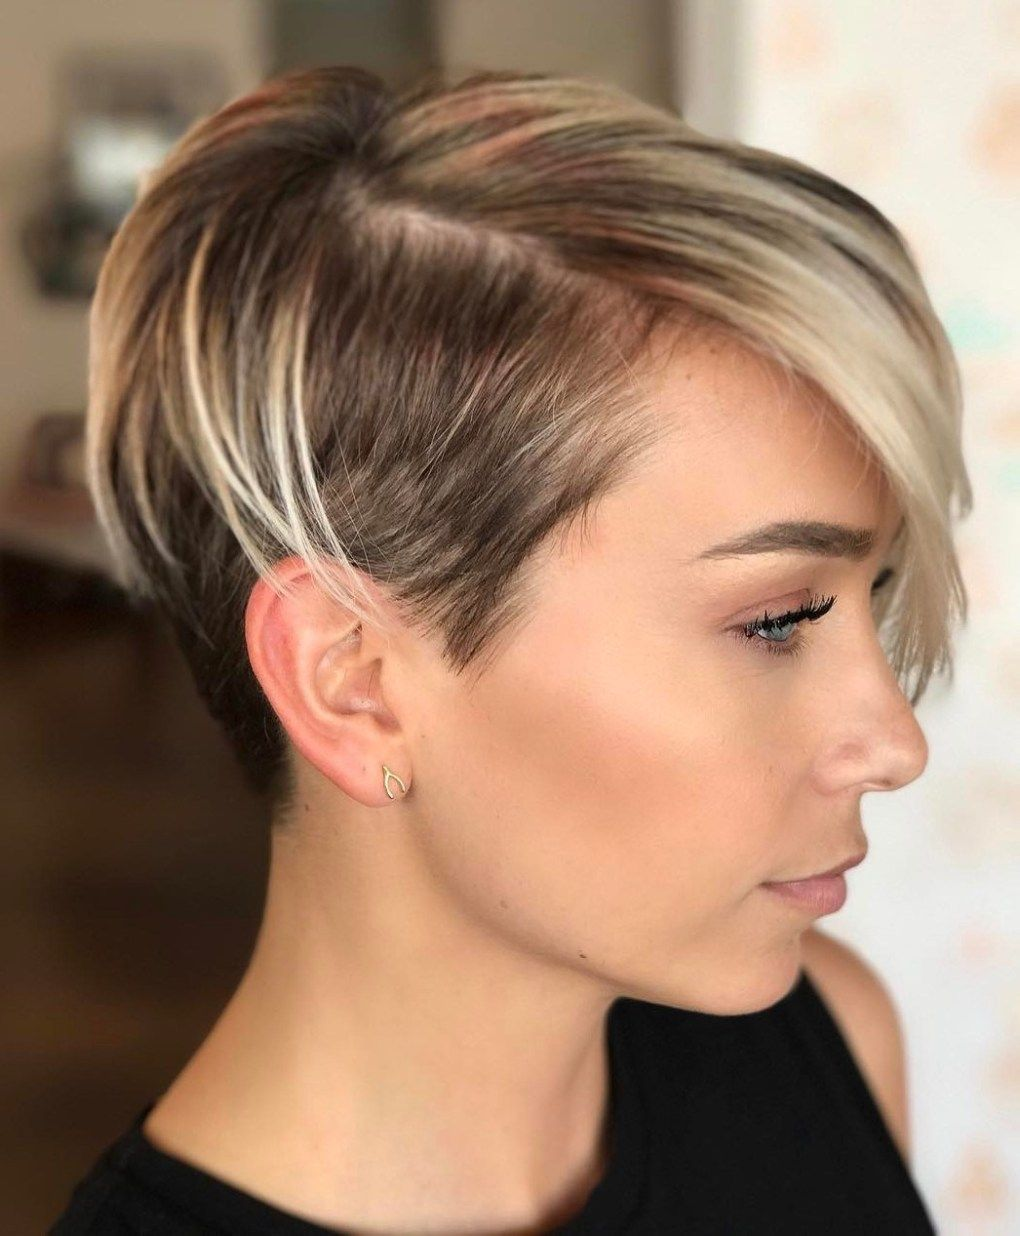 50 Best Trendy Short Hairstyles for Fine Hair - Hair Adviser | Thick hair  styles, Latest short haircuts, Short hairstyles fine